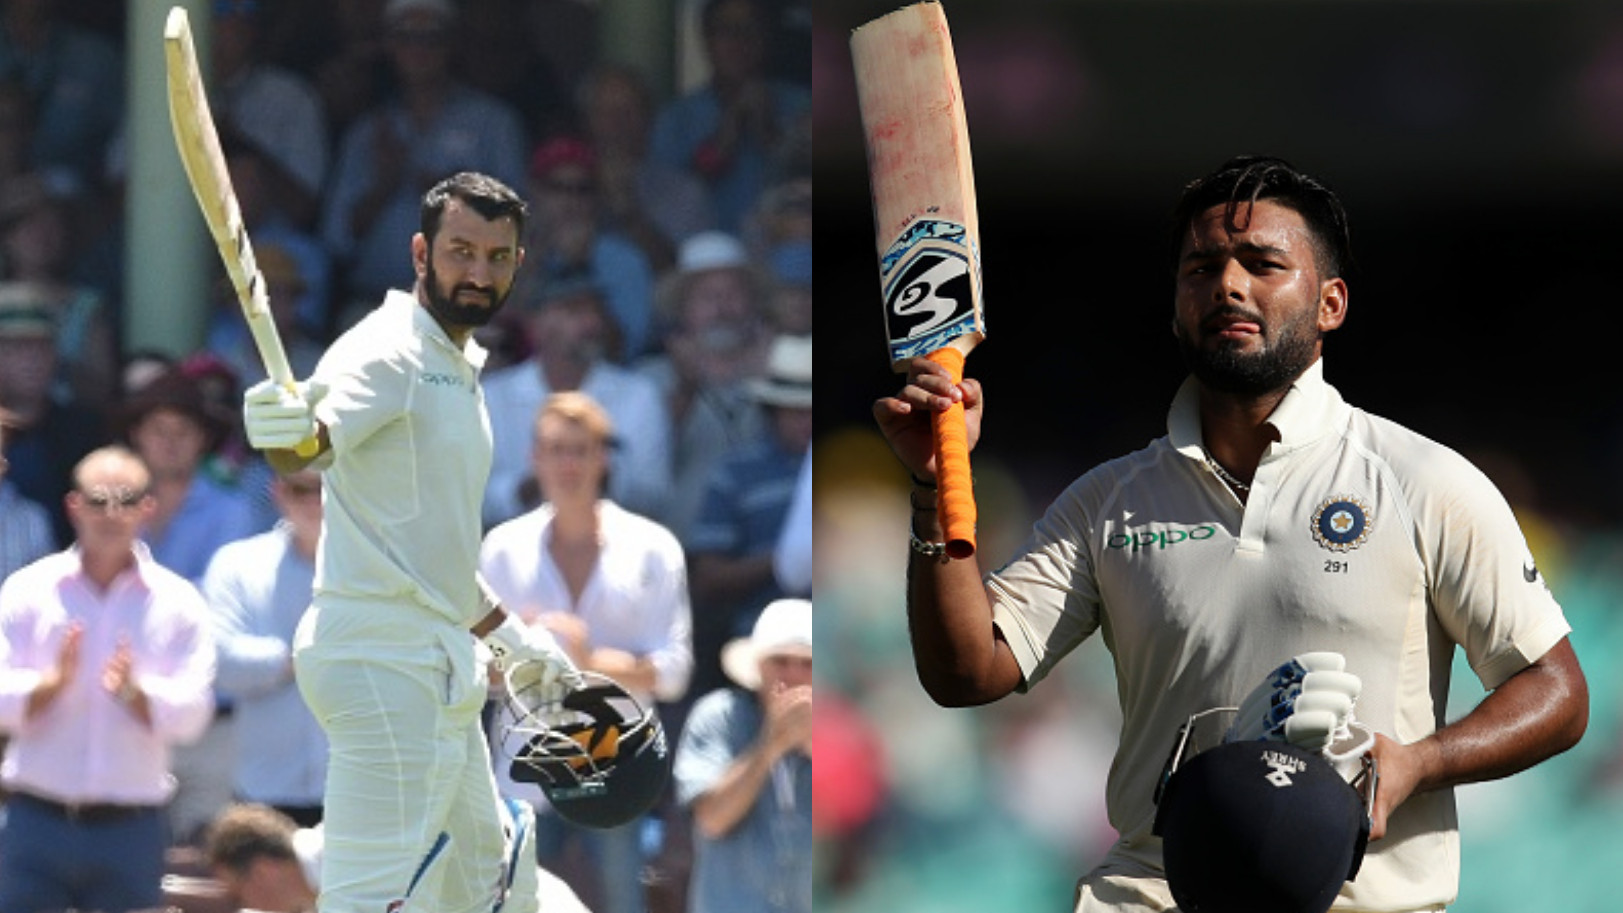 AUS v IND 2018-19: India declares on 622/7 after big hundreds by Cheteshwar Pujara and Rishabh Pant